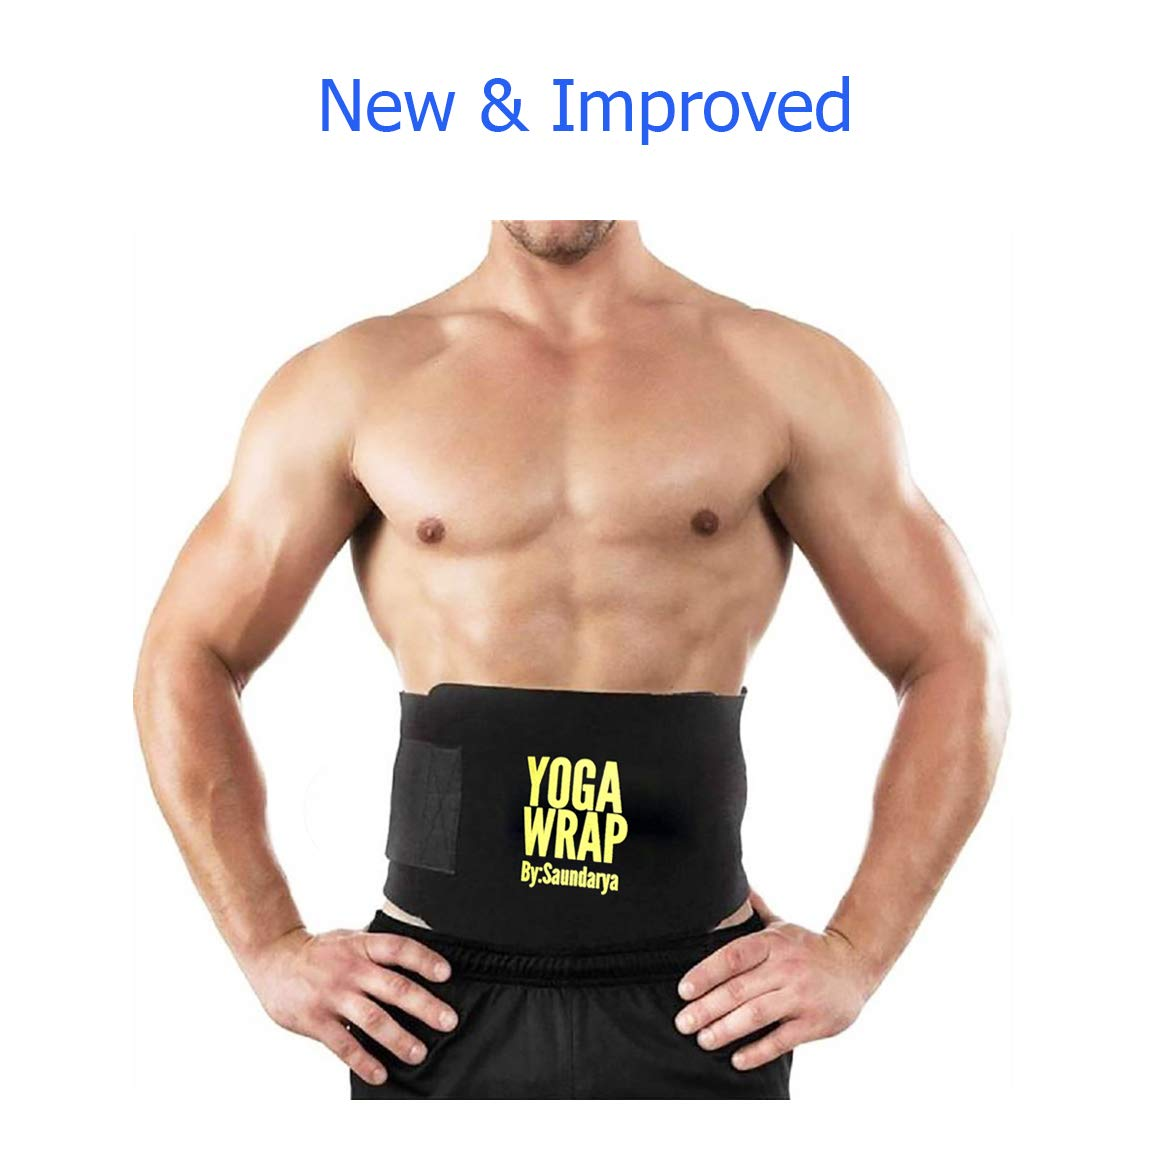 75b1e4dcccc Saundarya Yoga Wrap Sweat Belt Tummy Trimmer for Men and Women product image